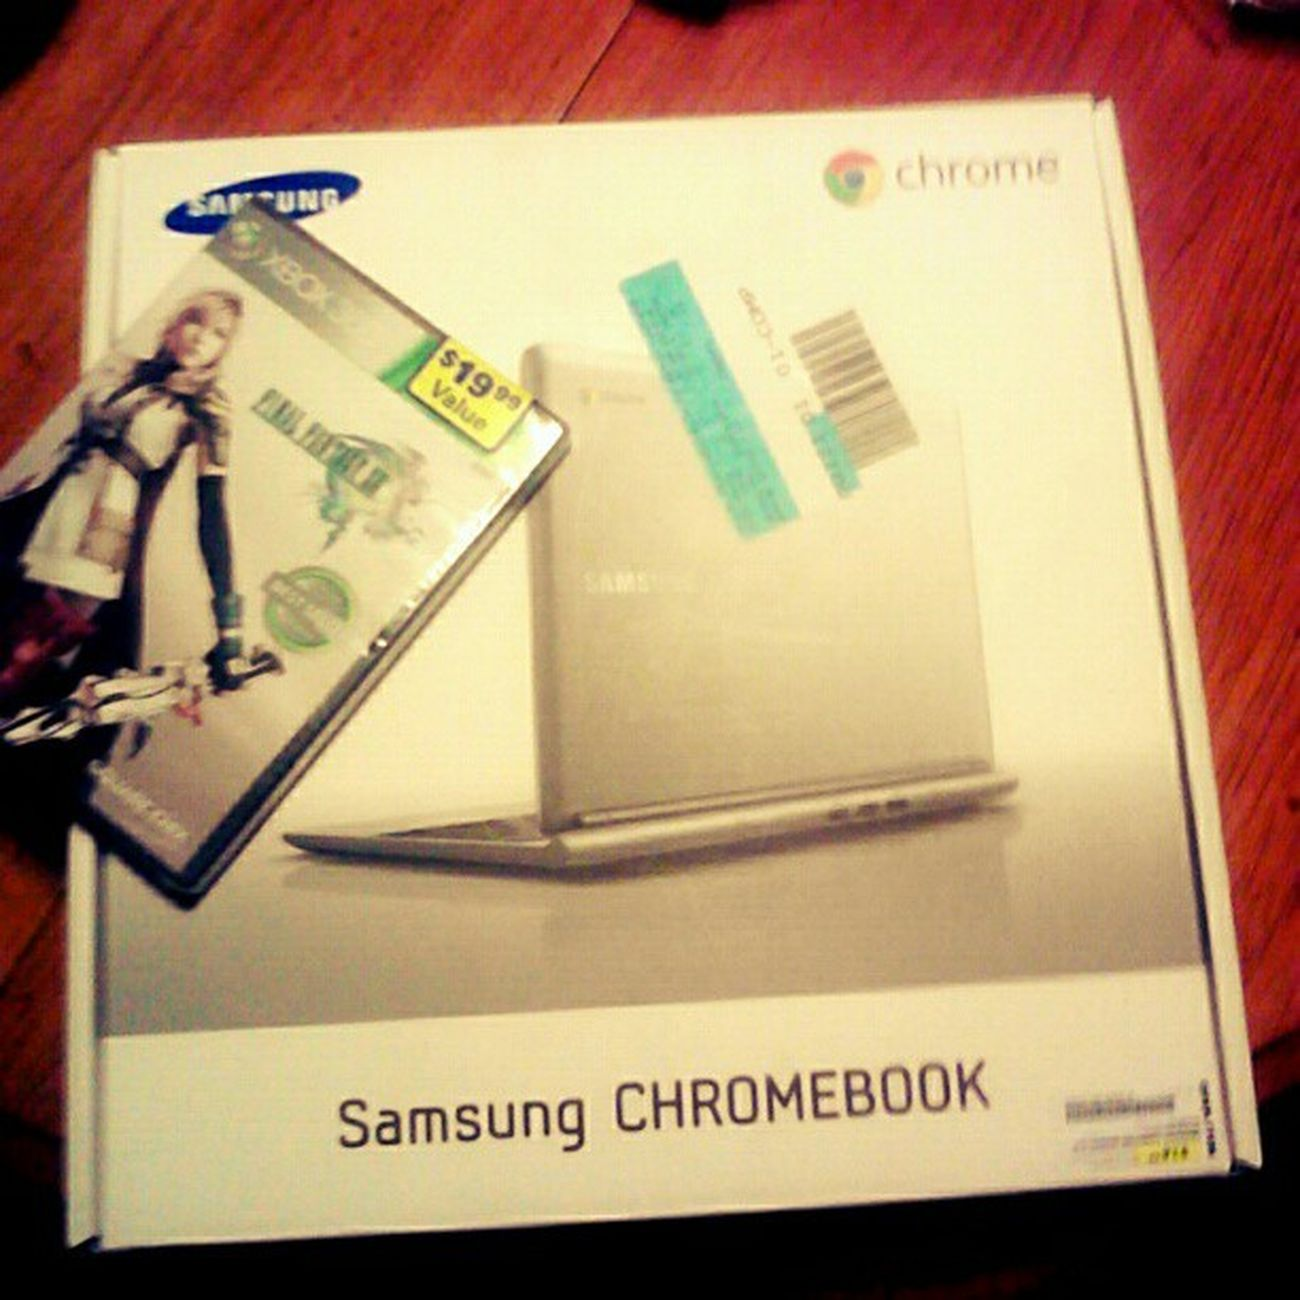 #new stuff! I got myself a #chromebook and #finalfantasyxiii. Finally! Wtfgamersonly FinalFantasy13 Google Wtfgo New Samsungchromebook Laptop Xboxgame Gadgets Googlechromebook Tech Samsung UltraBook Gamer Xbox360 Device Loot Finalfantasy Chromebook FinalFantasyXIII